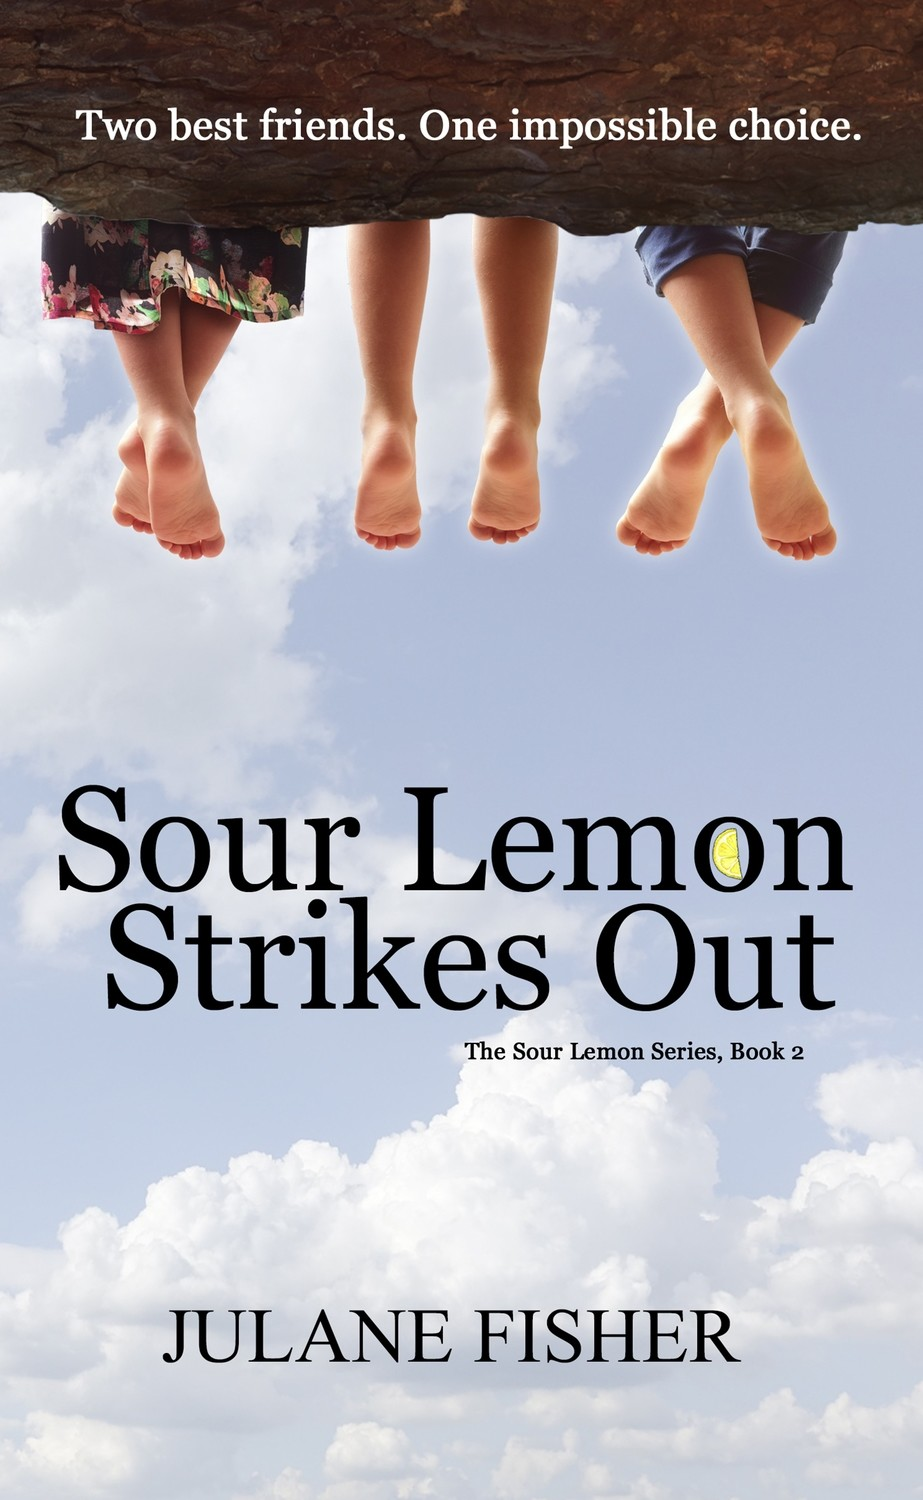 Sour Lemon Strikes Out (Sour Lemon Series, Book 2)